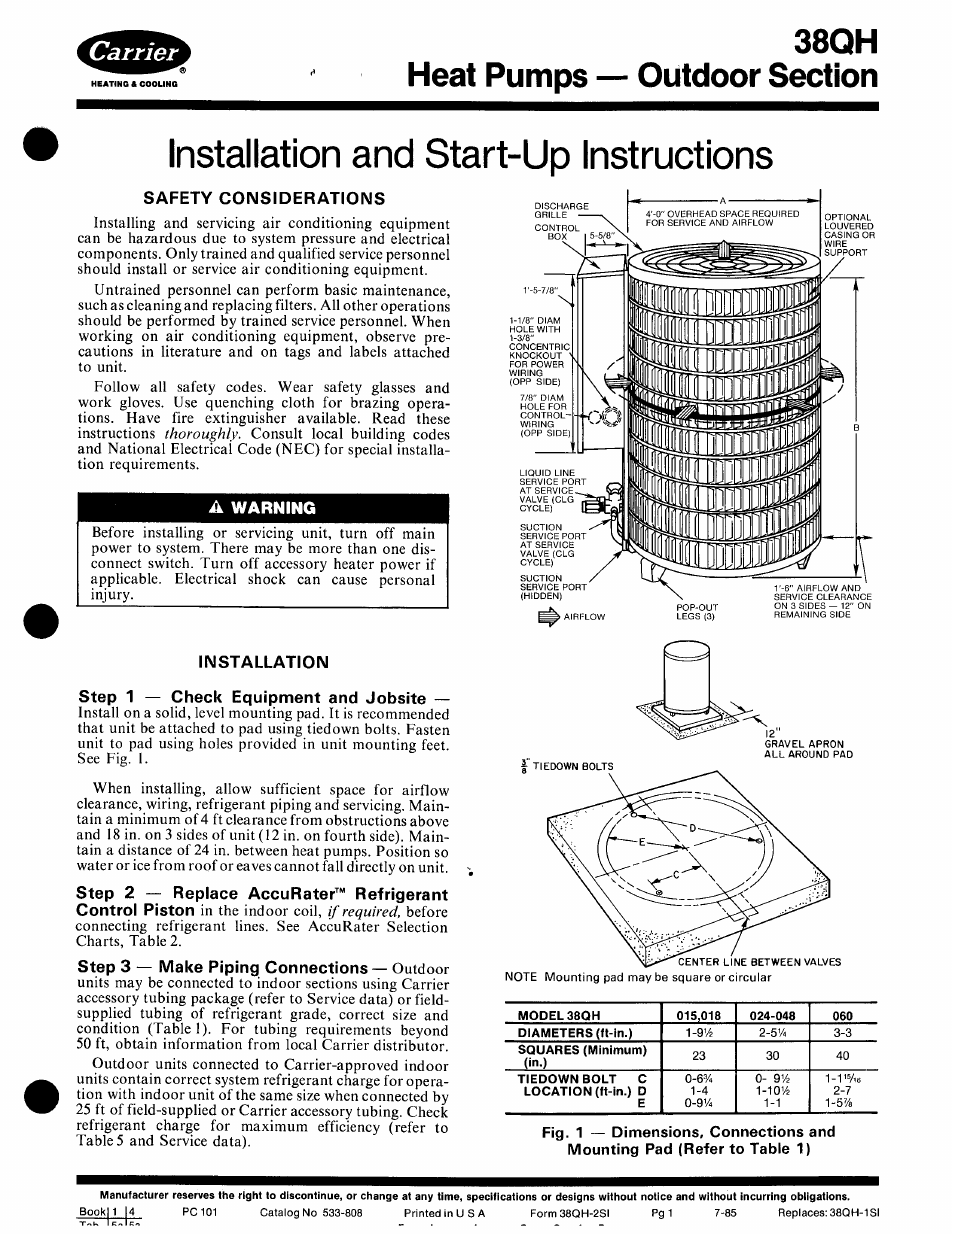 Carrier 38qh User Manual